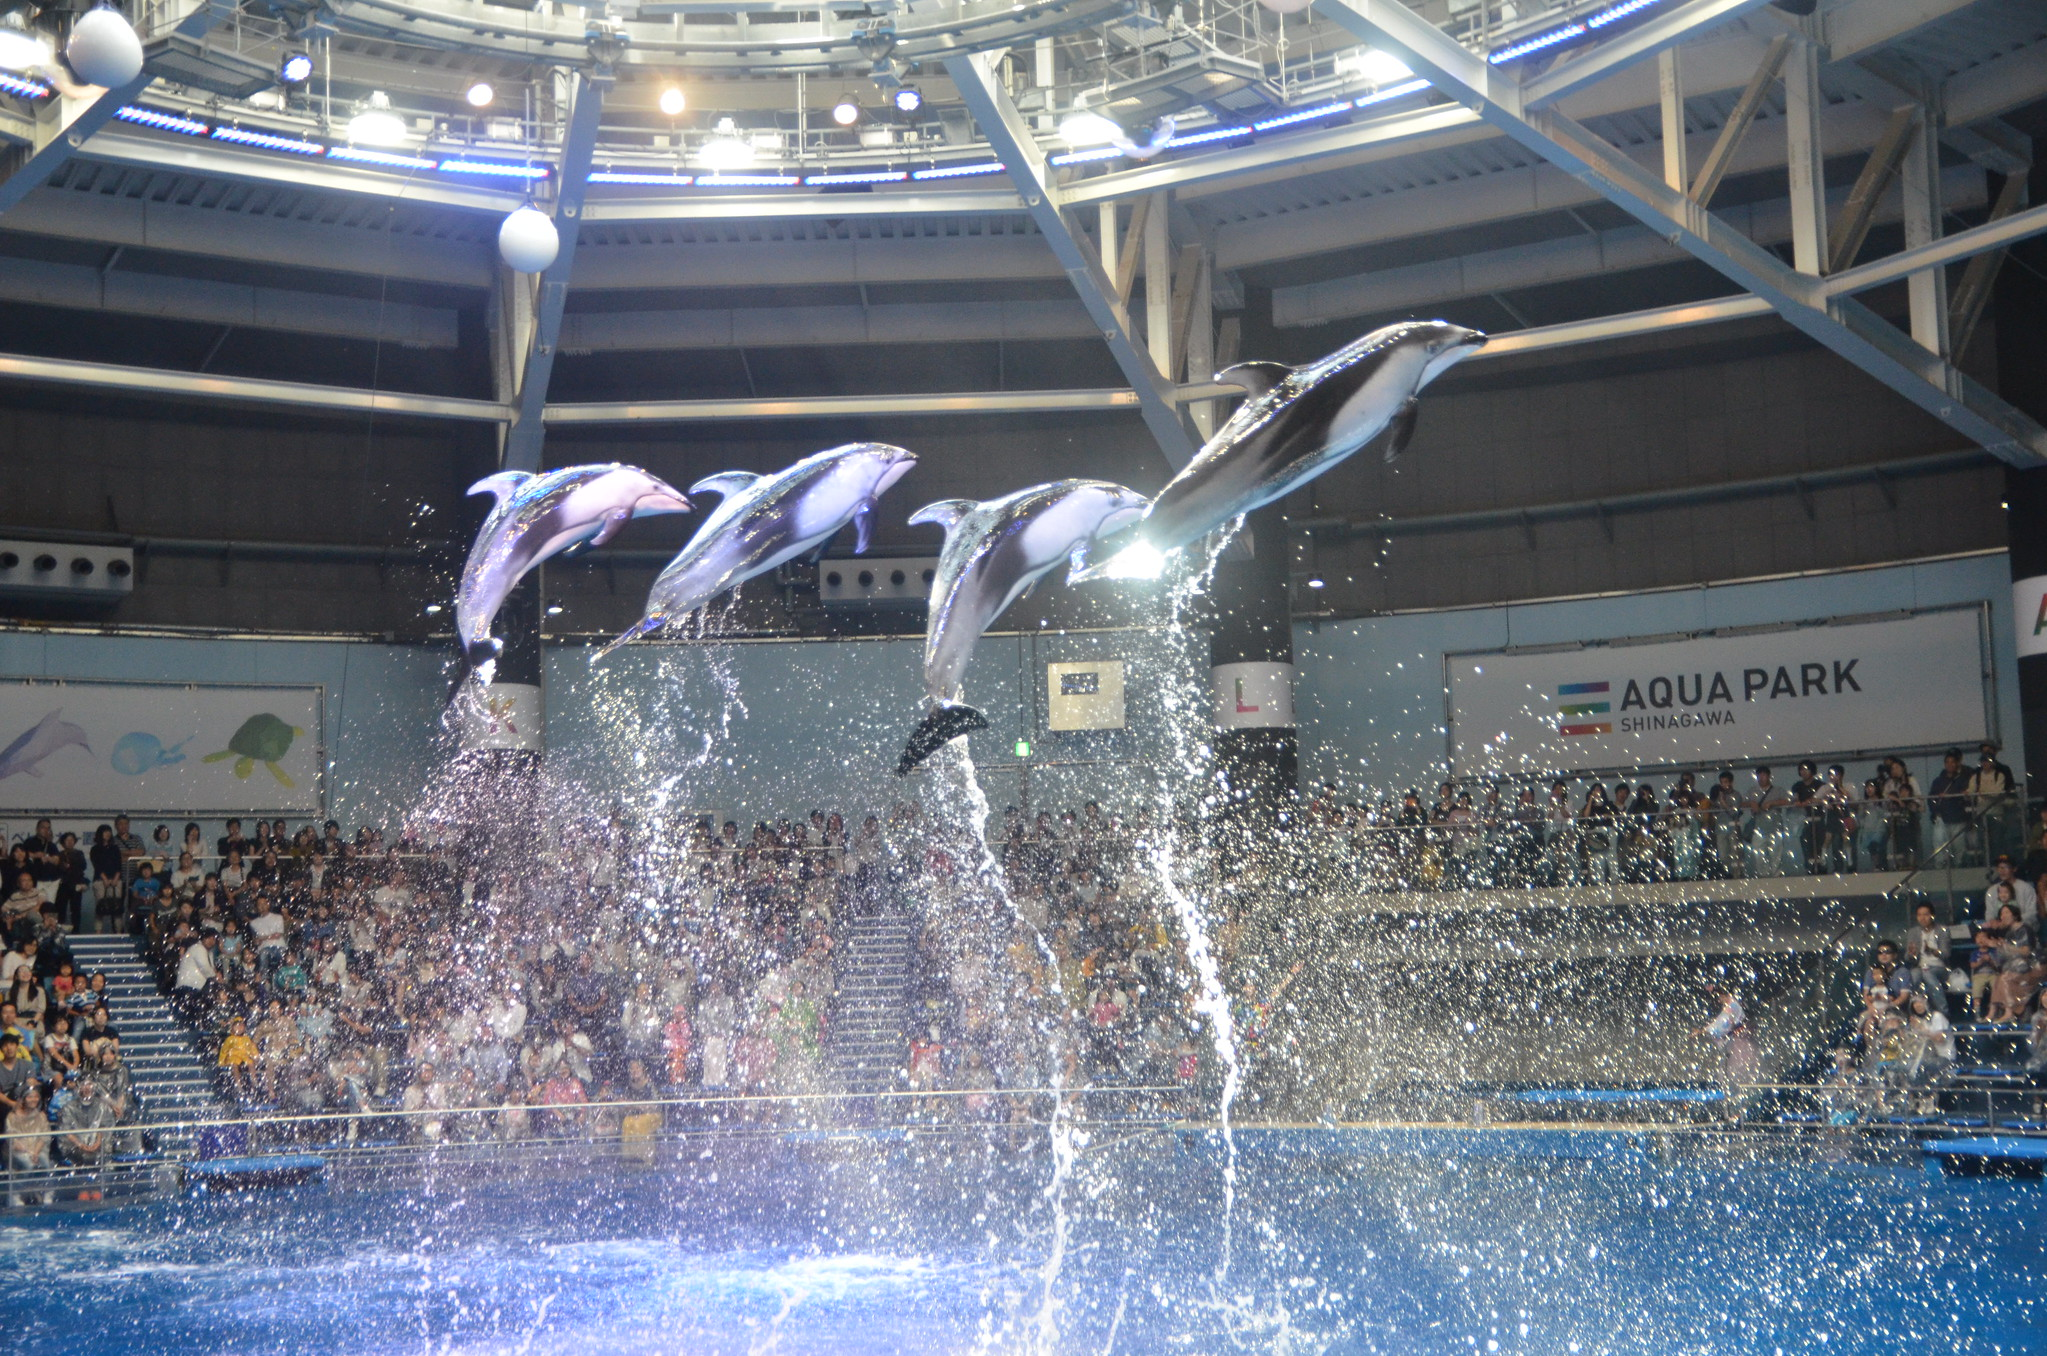 Four dolphins jumping